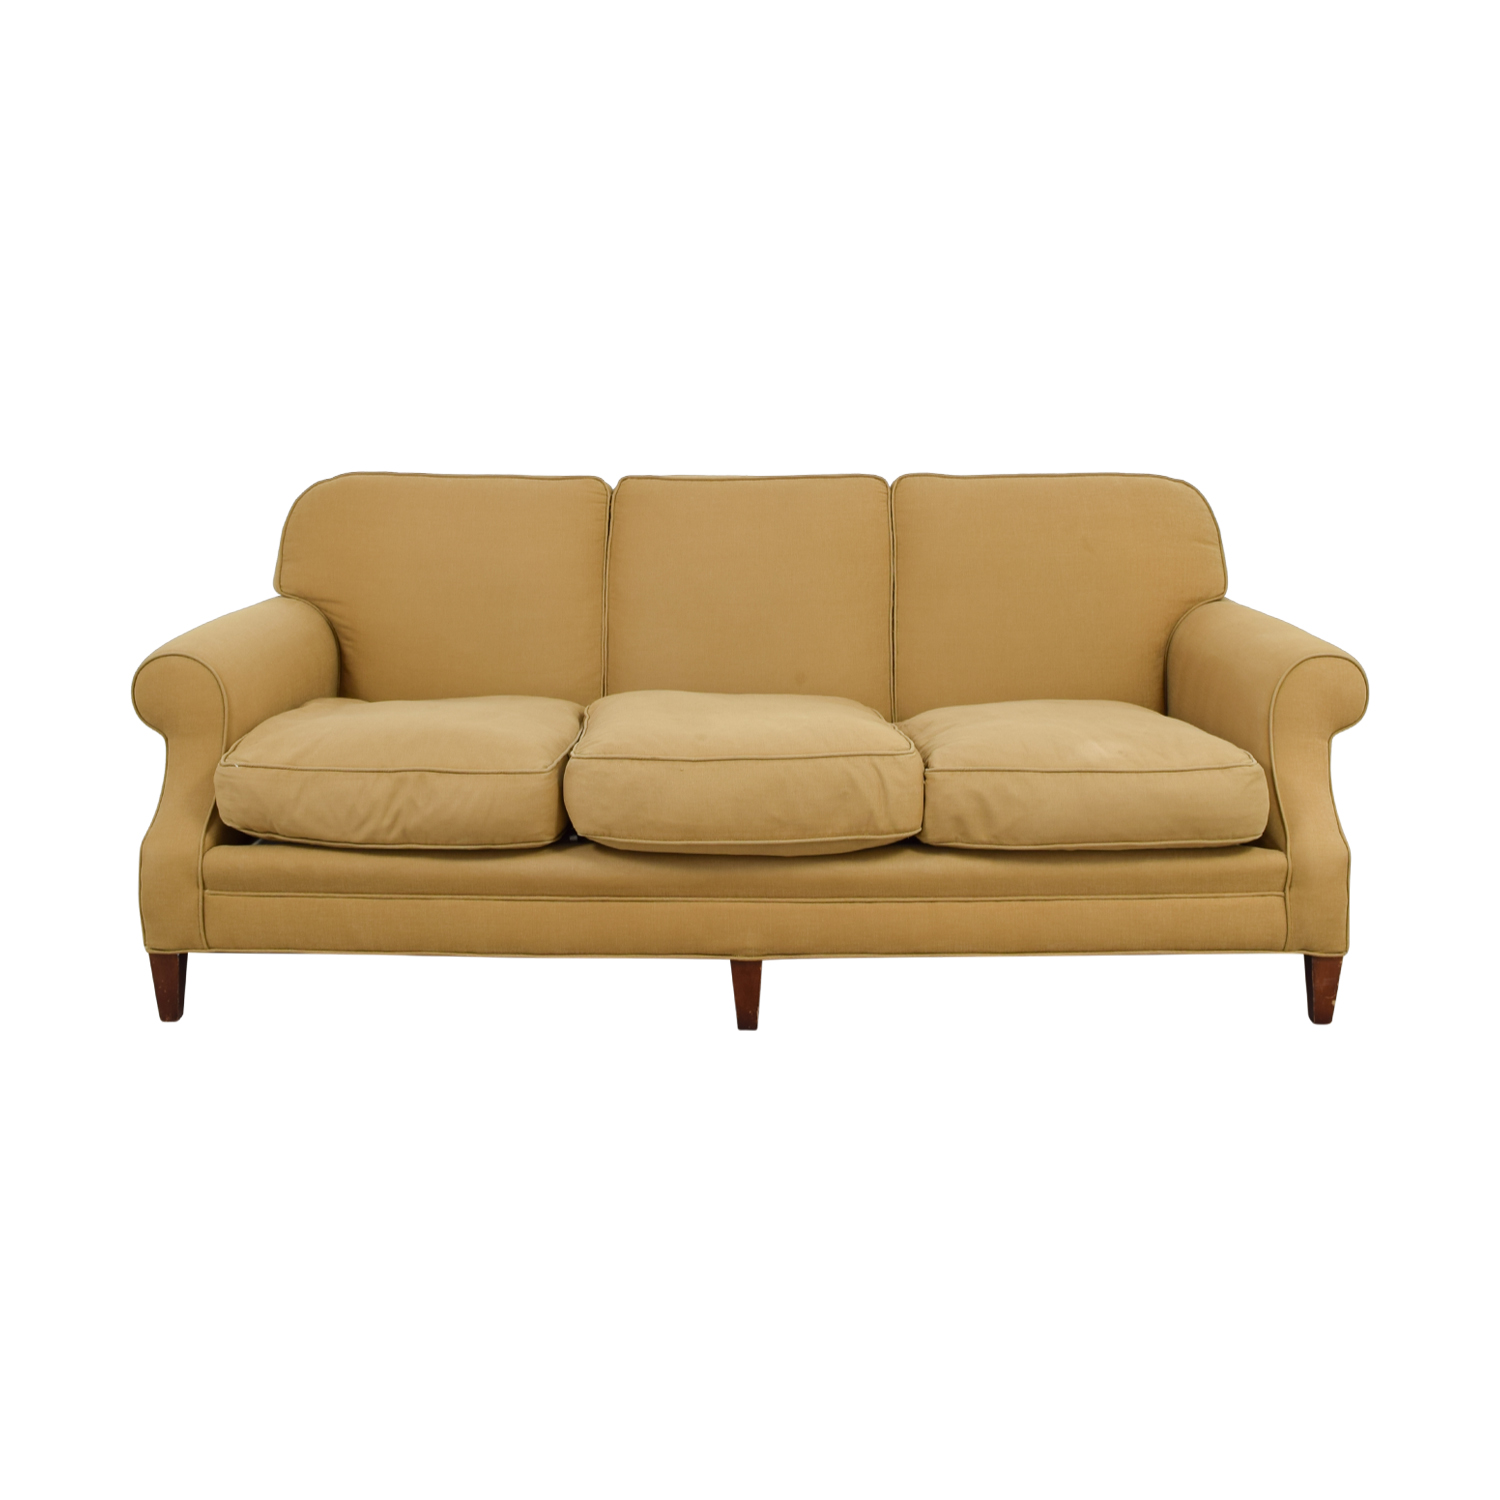 three cushion sofa camel back for sale sofas design large 3 covers